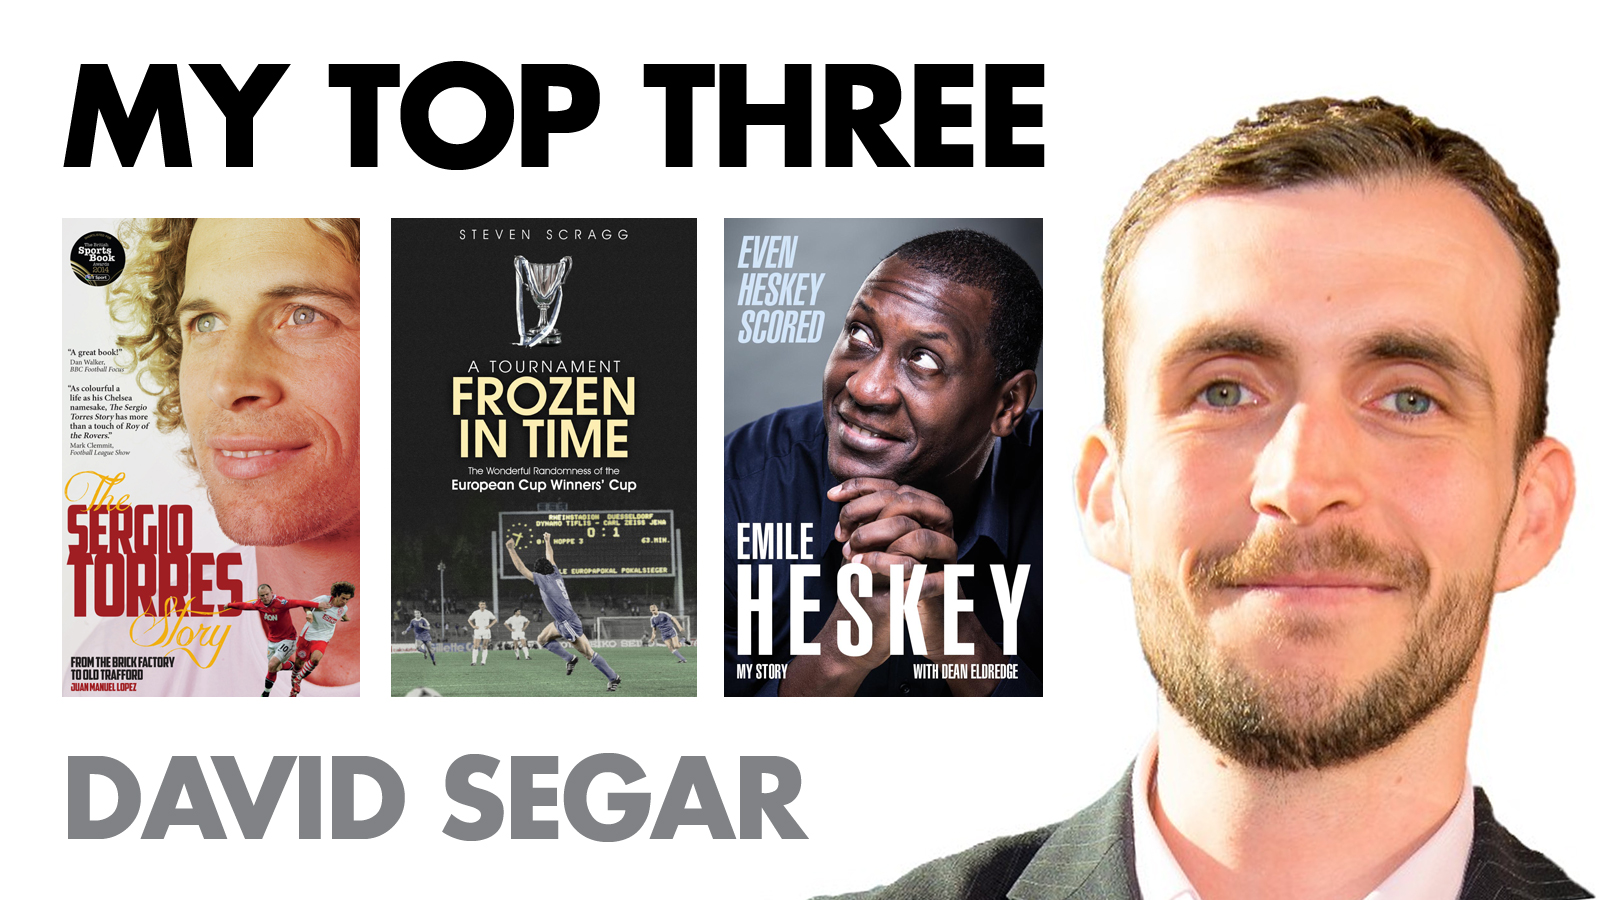 MY TOP THREE: DAVID SEGAR